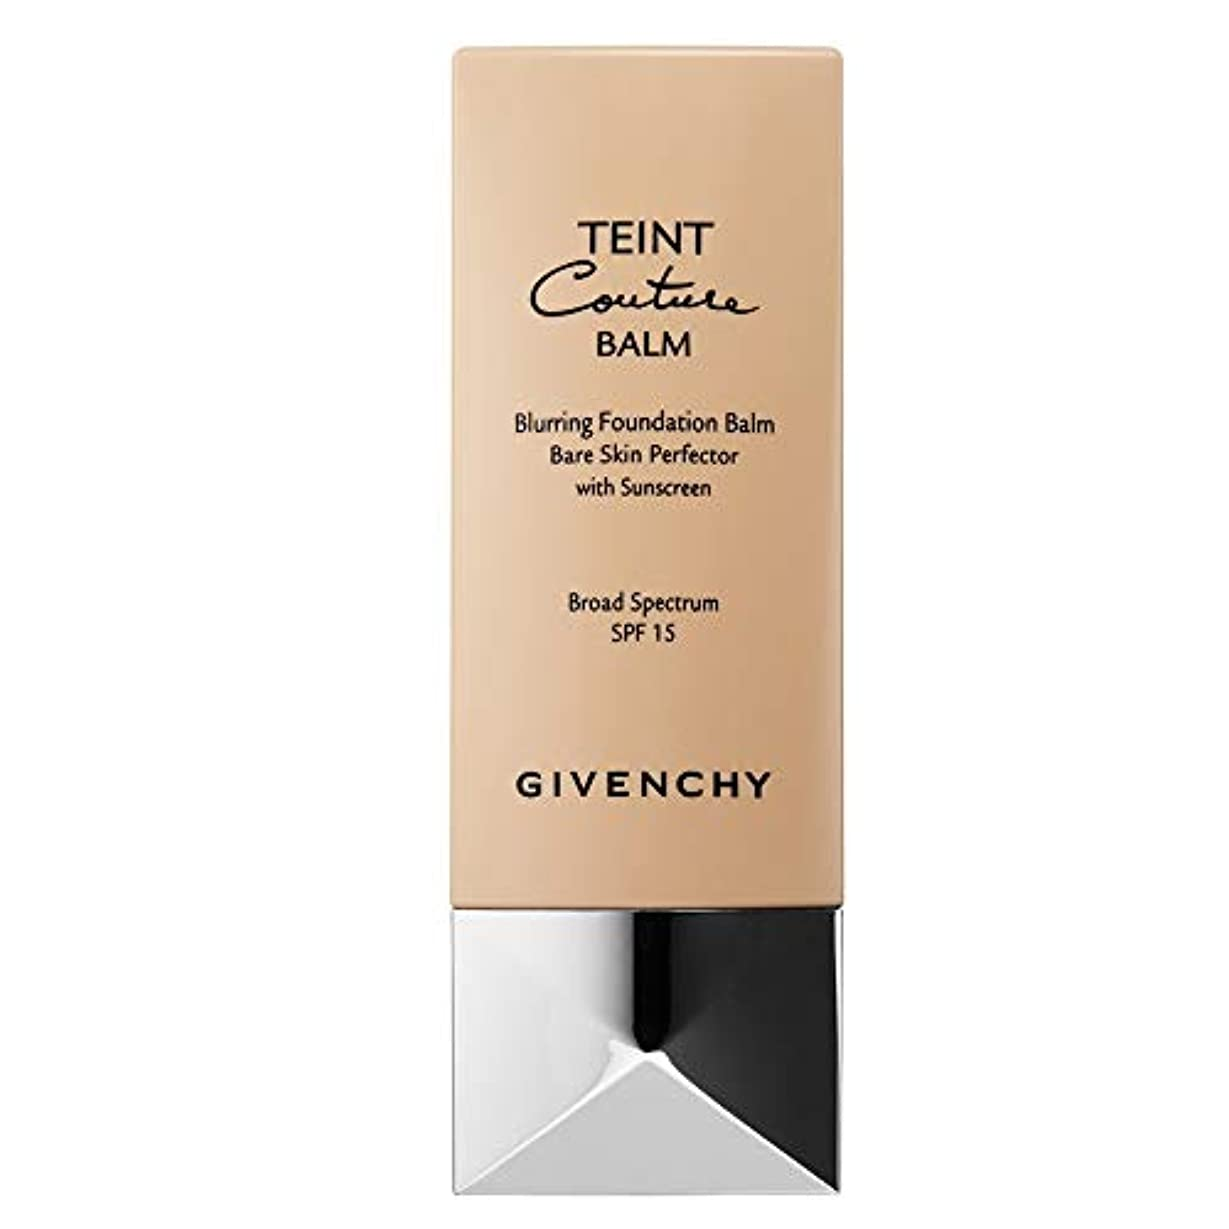 原子システム単にジバンシィ Teint Couture Blurring Foundation Balm SPF 15 - # 1 Nude Porcelain 30ml/1oz並行輸入品